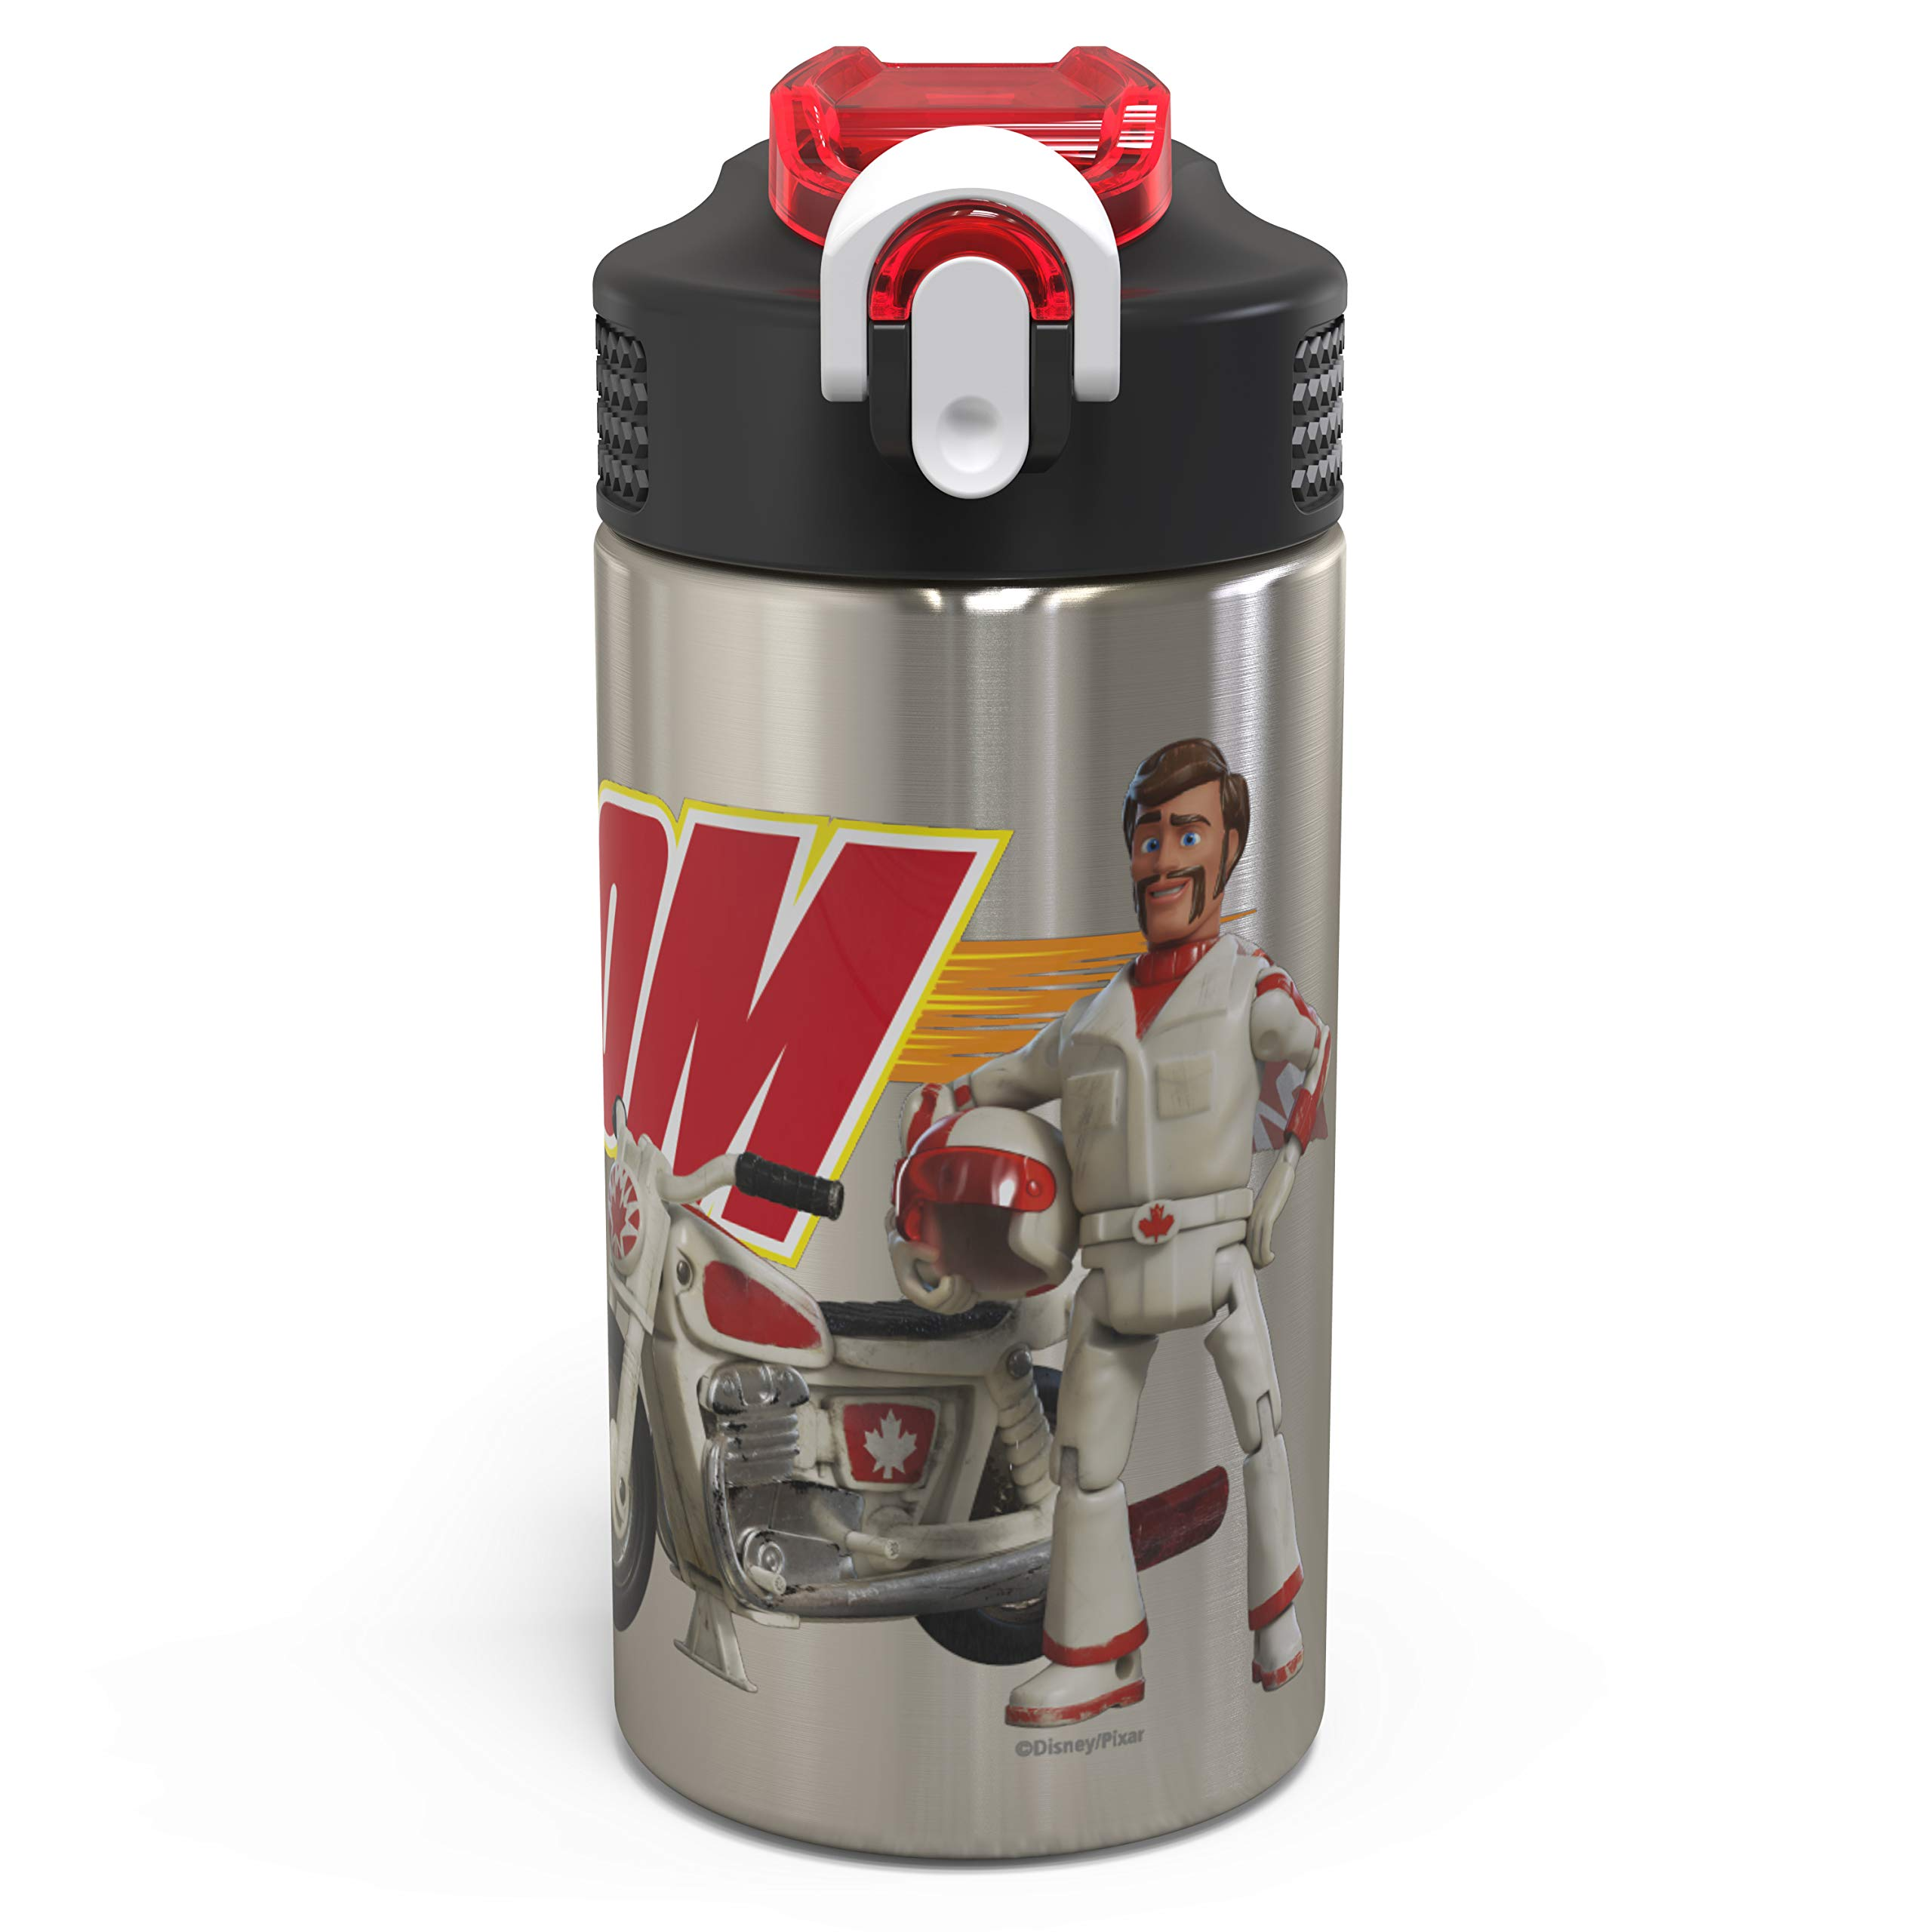 Zak Designs Toy Story 4 Duke Caboom Stainless Steel BPA Free Water Bottle 15.5 oz with One Hand Operation Action Lid and Built-in Carrying Loop, Water Bottle with Straw is Perfect for Kids